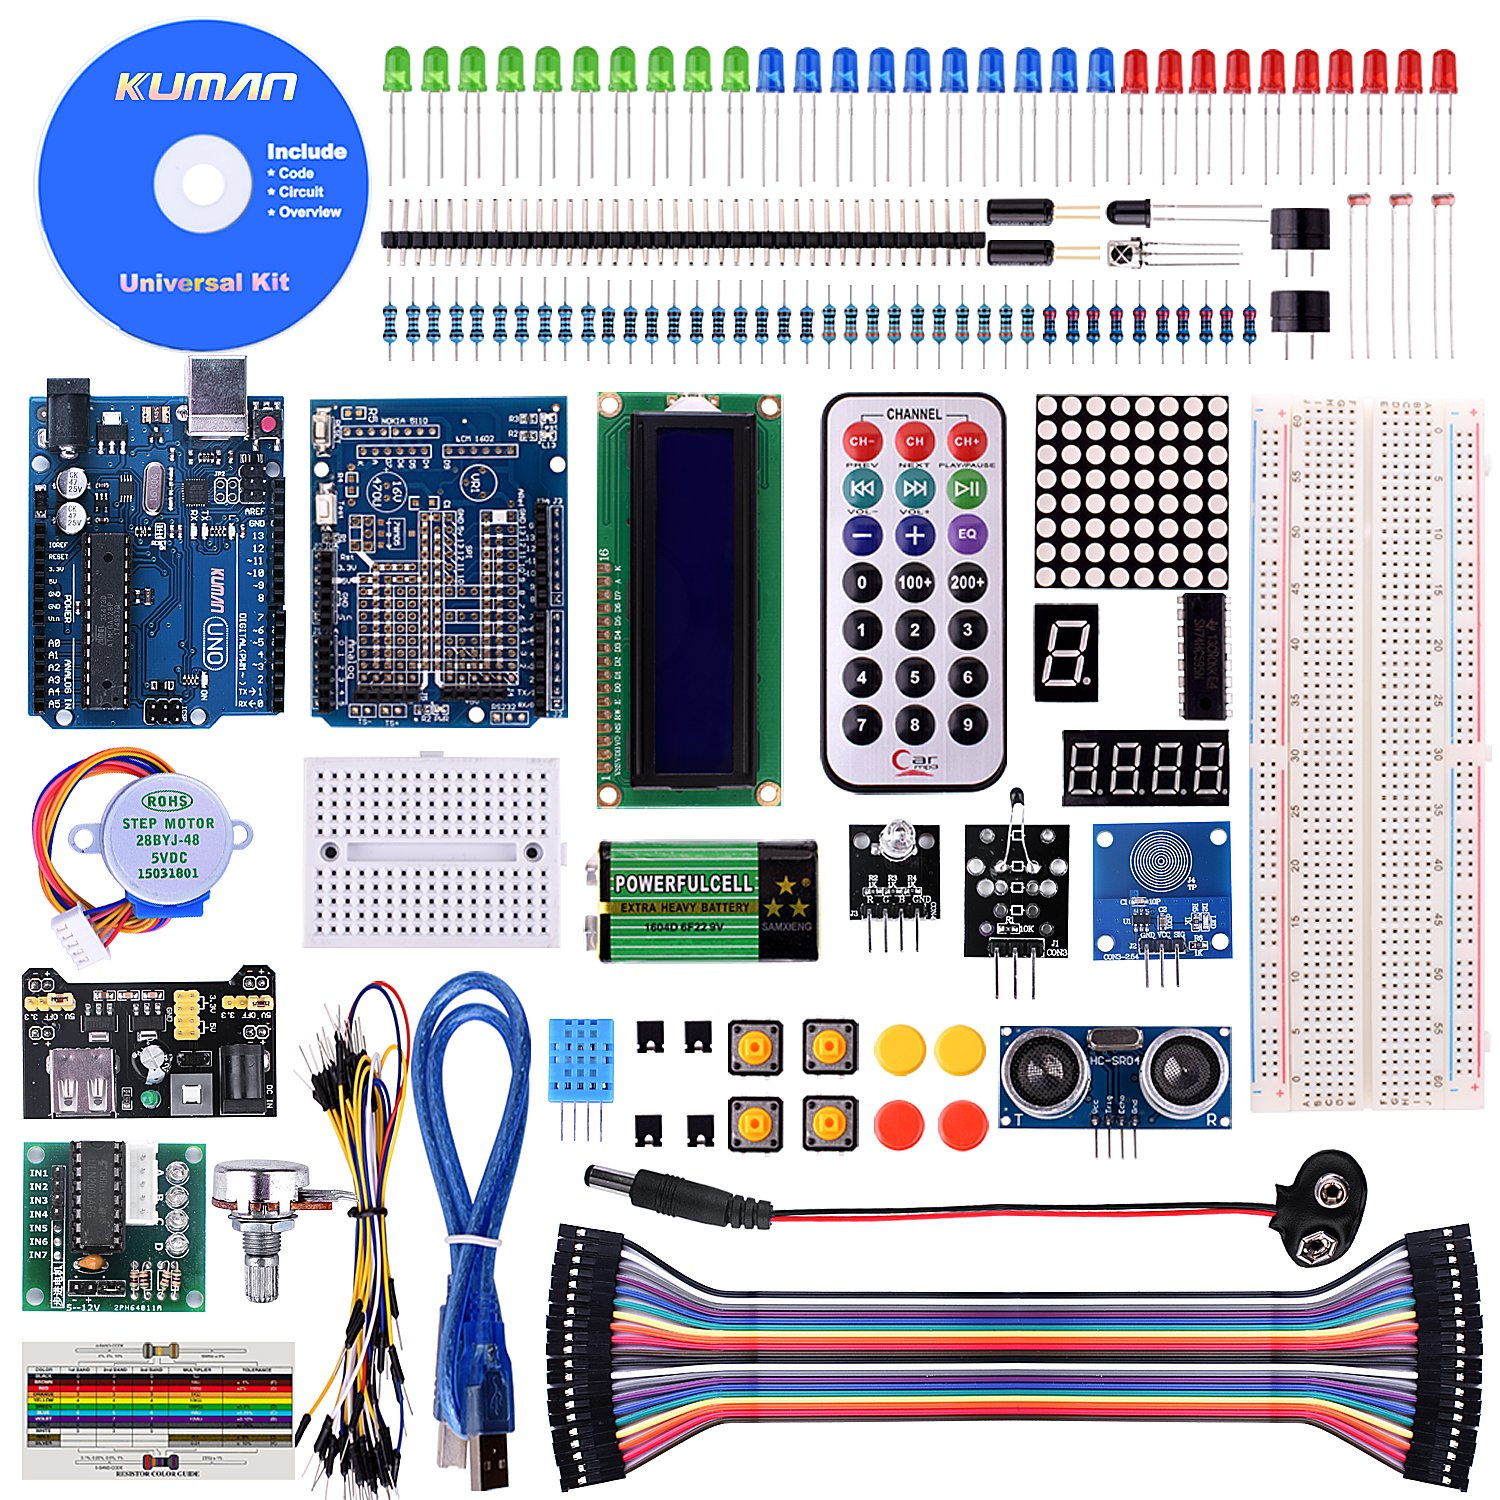 Kuman K4-US for Arduino Project Complete Starter Kit with Detailed Tutorial and Reliable Components for UNO R3 Mega 2560 Robot Nano breadboard Kits